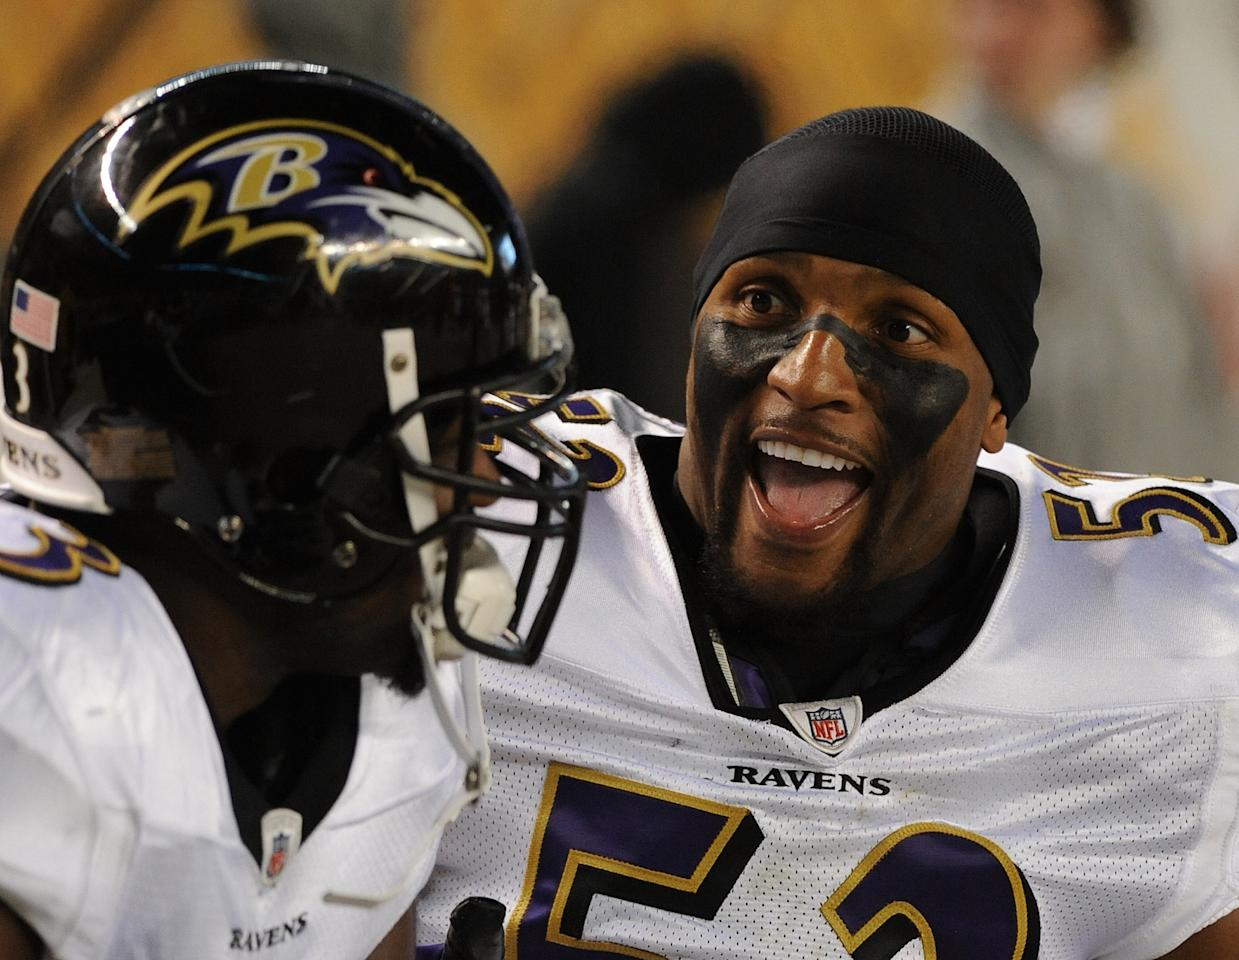 PITTSBURGH, PA - NOVEMBER 6: Linebacker Ray Lewis #52 of the Baltimore Ravens talks to a teammate on the sideline during a game against the Pittsburgh Steelers at Heinz Field on November 6, 2011 in Pittsburgh, Pennsylvania. The Ravens defeated the Steelers 23-20. (Photo by George Gojkovich/Getty Images)